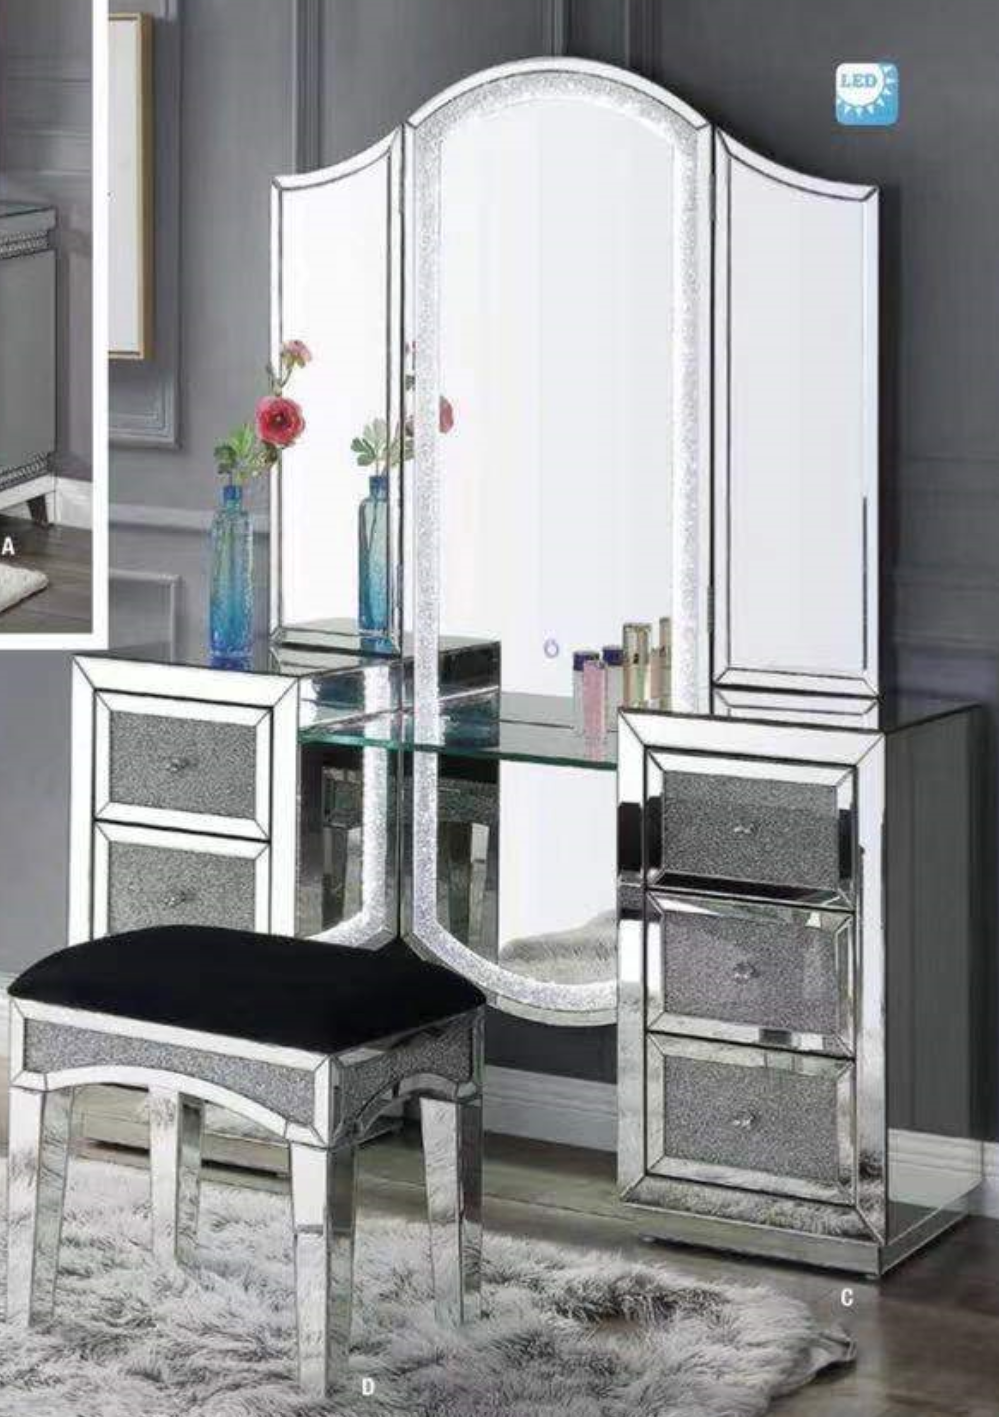 Independent dressing table with matching stool